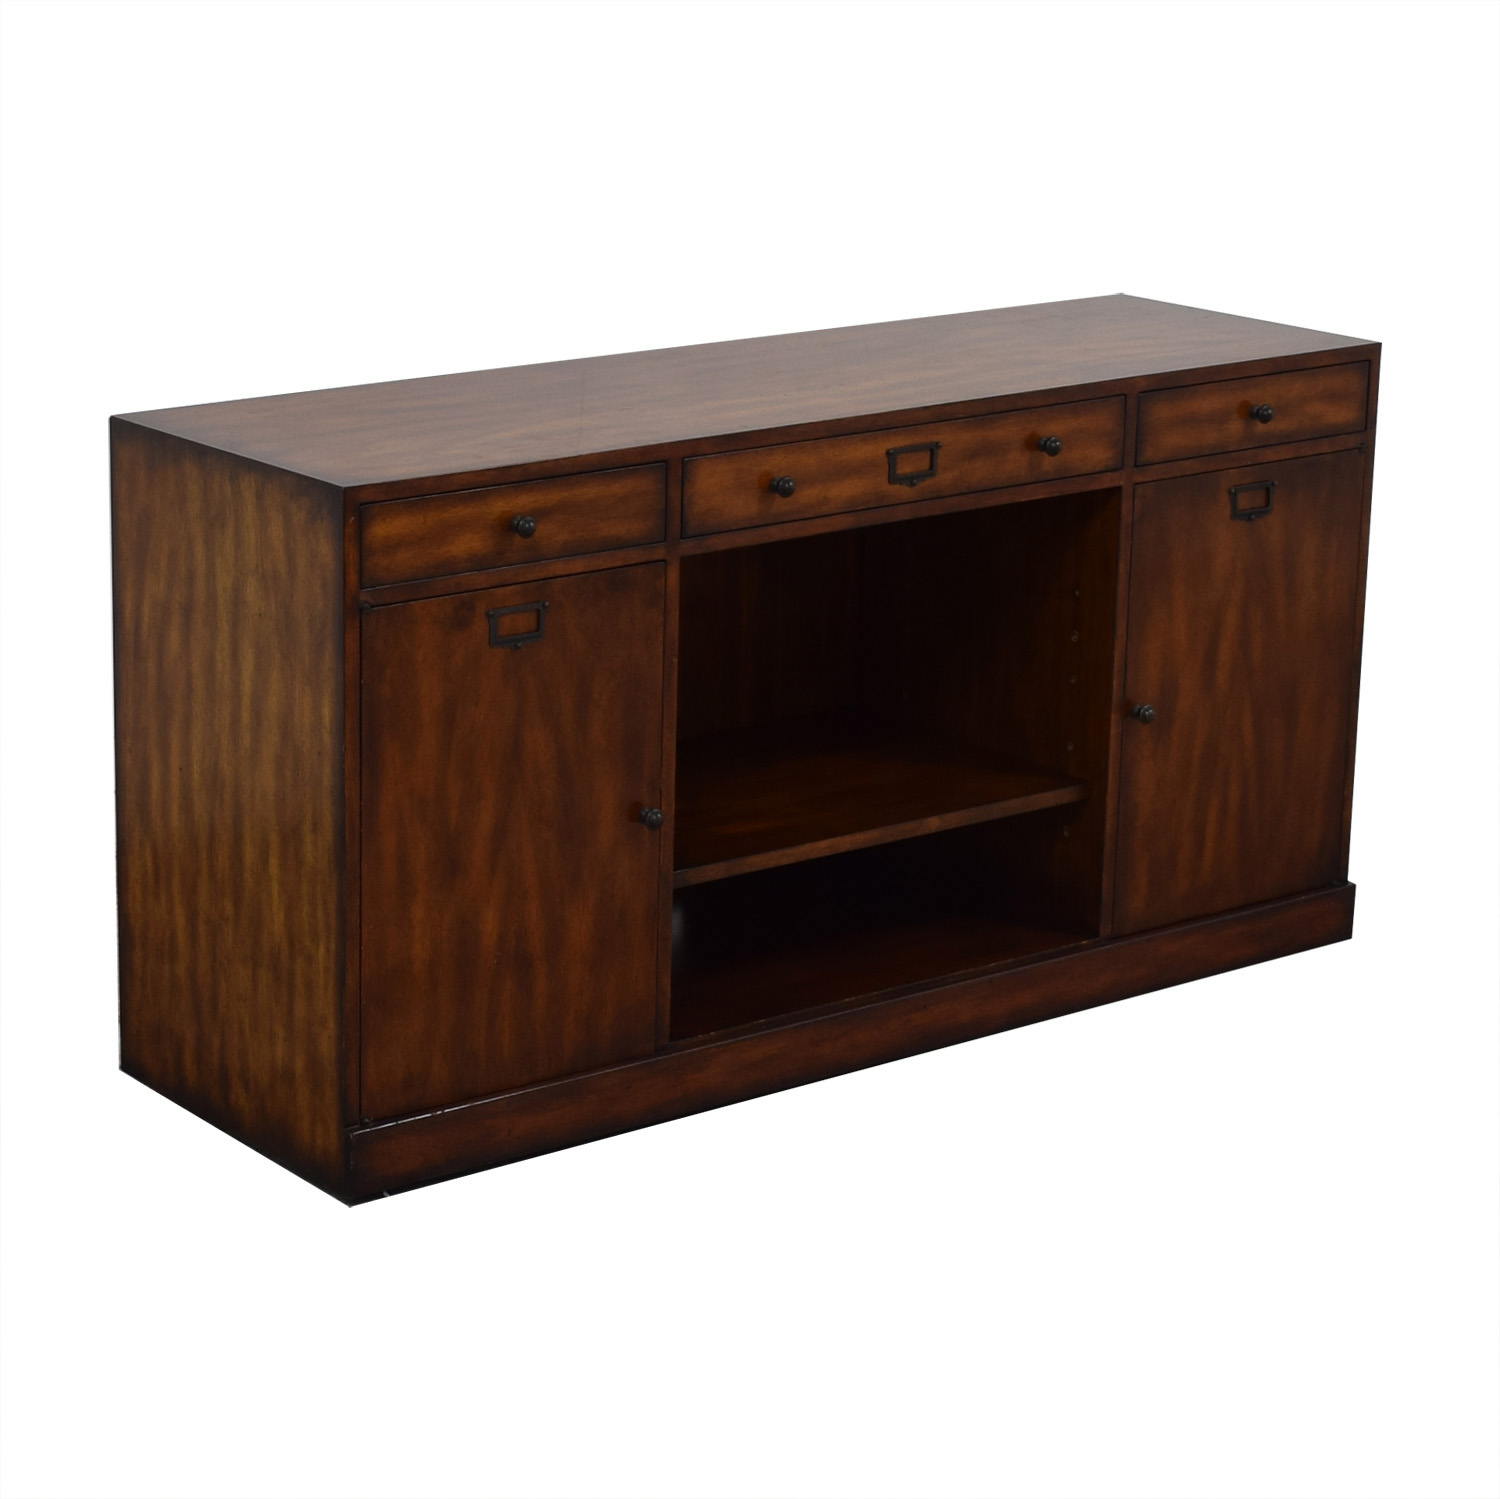 ABC Carpet & Home ABC Carpet & Home Three Drawer Media Console second hand